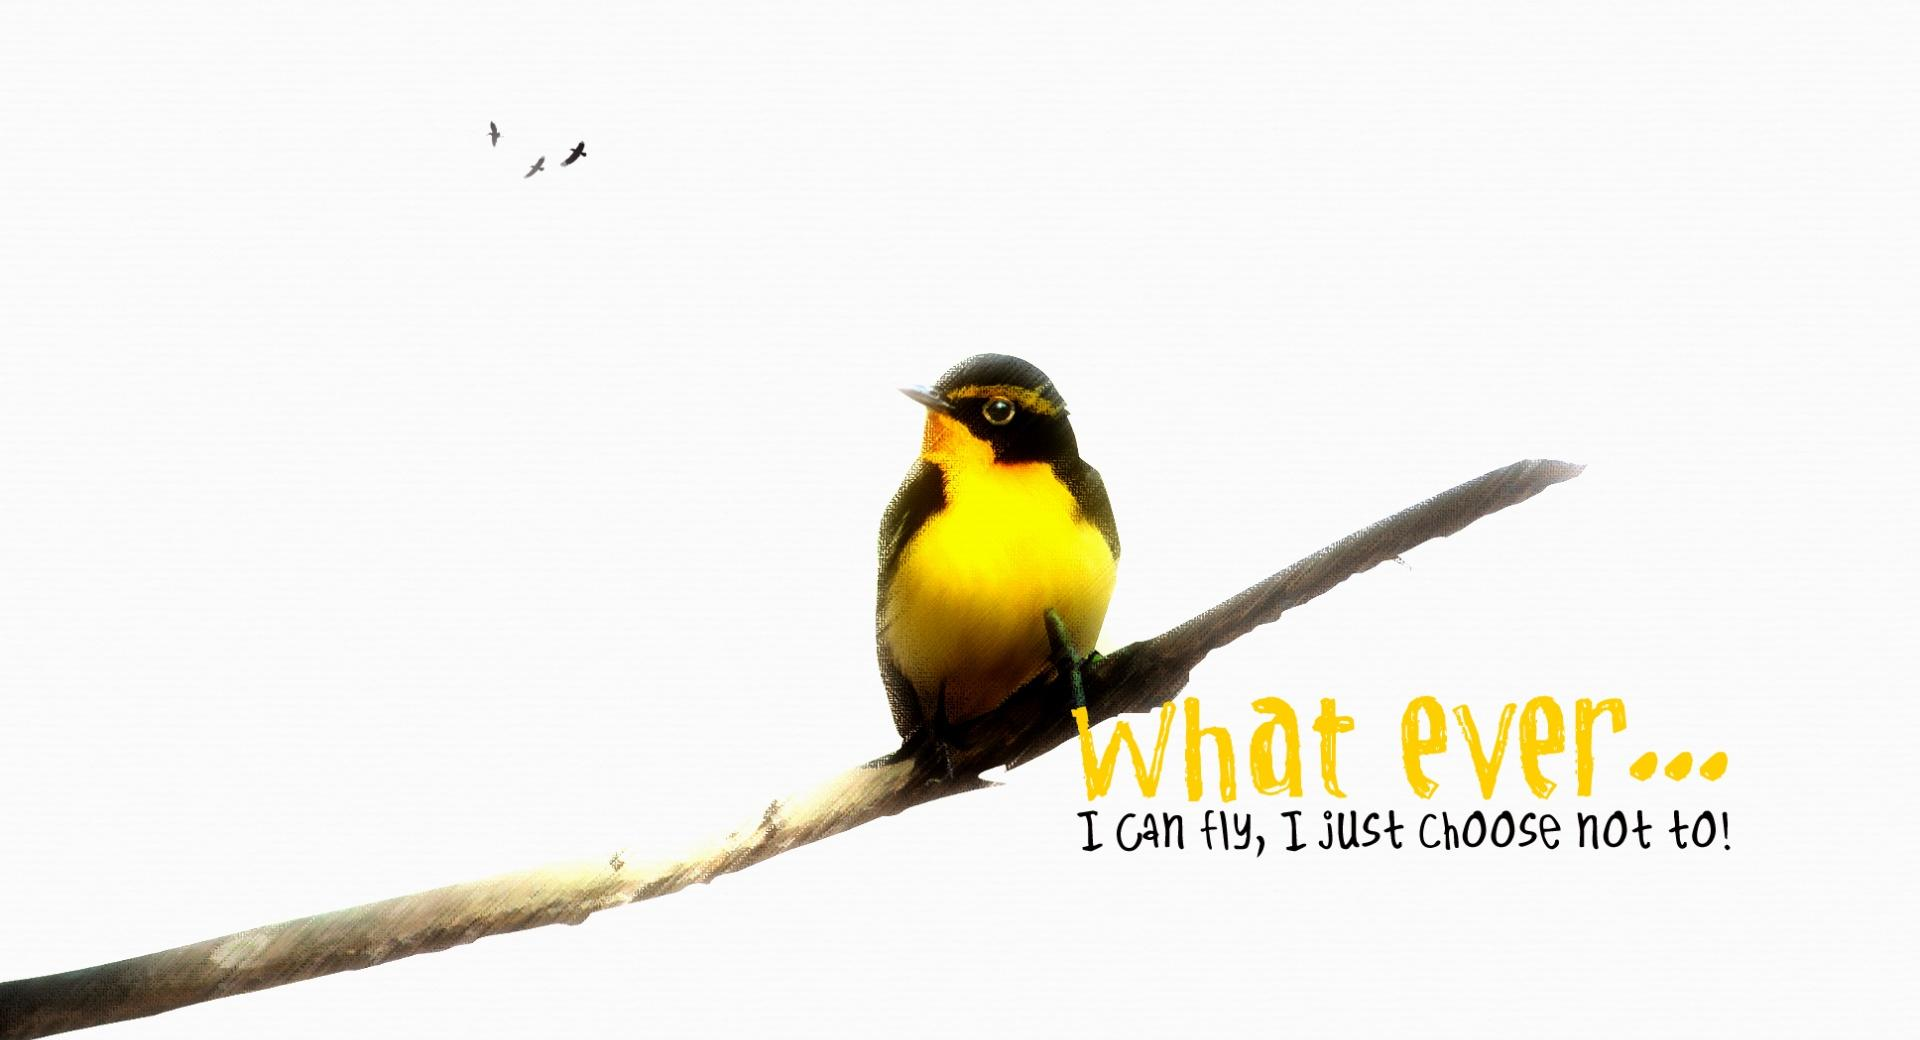 What Ever! wallpapers HD quality